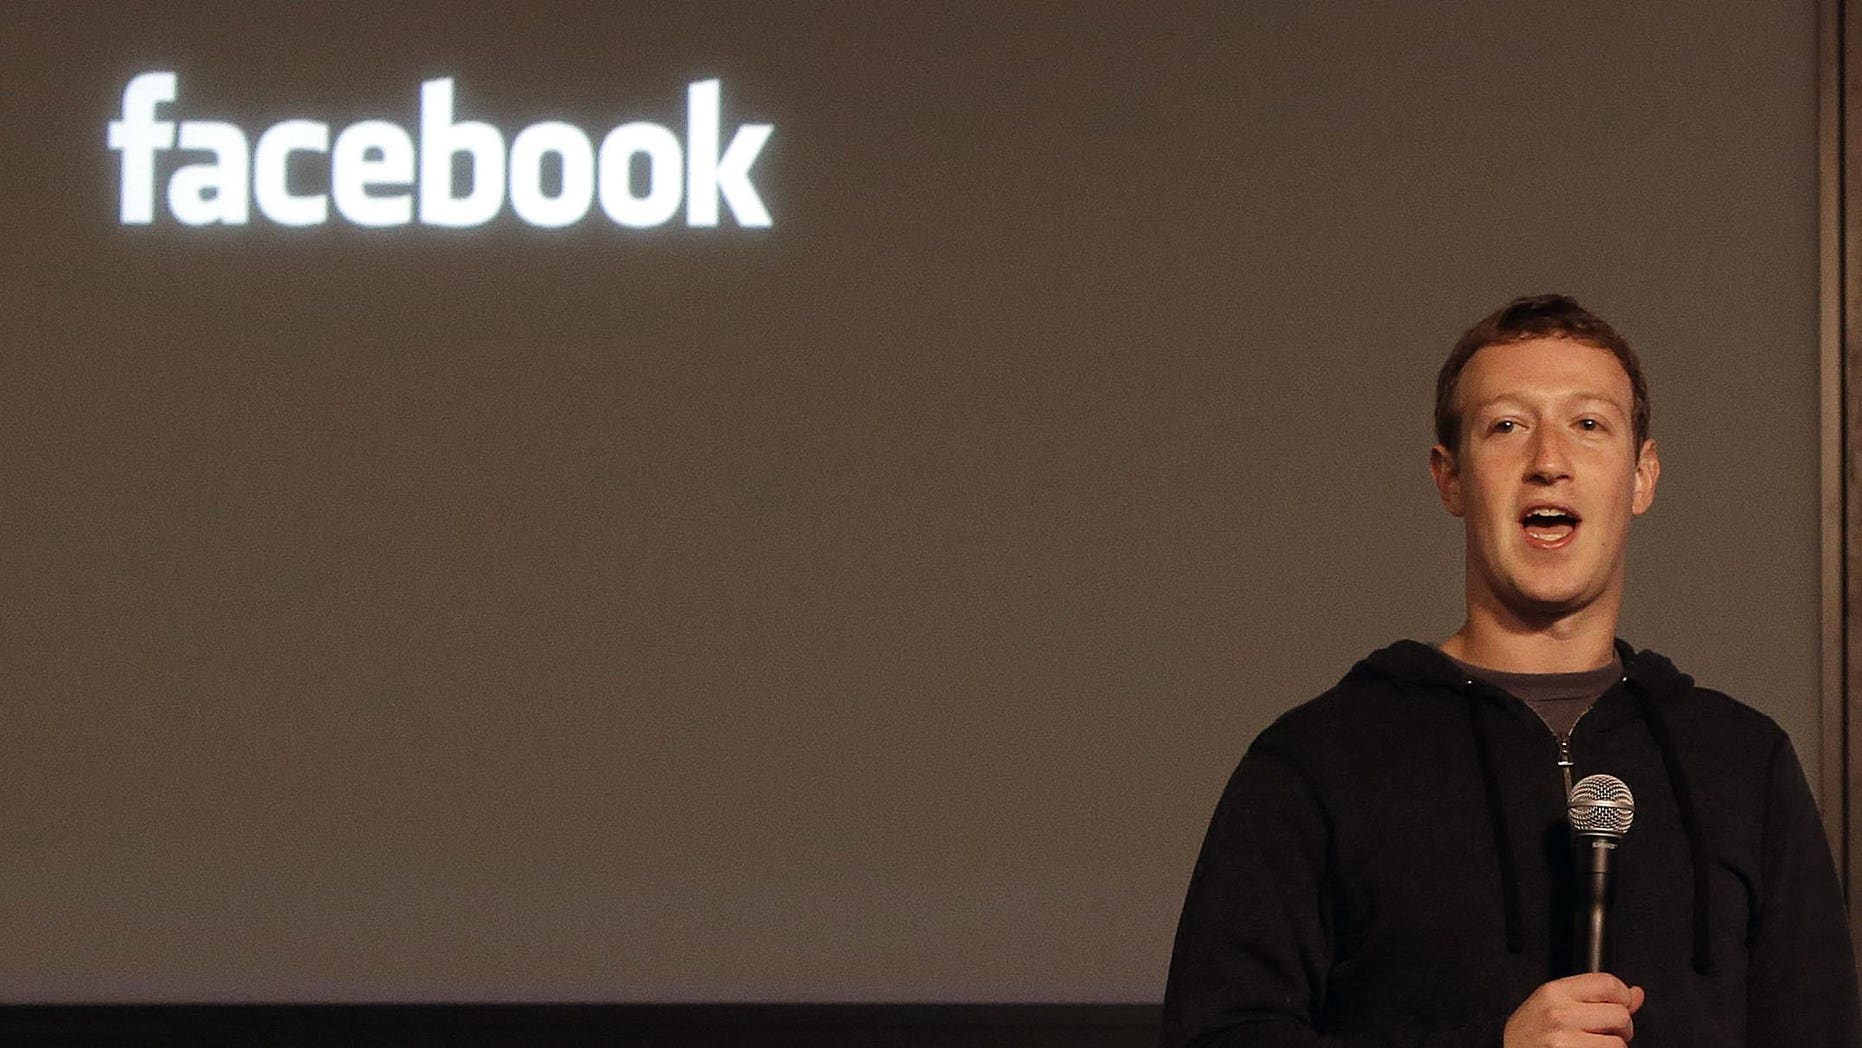 """Facebook CEO Mark Zuckerberg speaks at Facebook headquarters in Menlo Park, Calif., Tuesday, Jan. 15, 2013.  Zuckerberg introduced graph search"""" Tuesday, a new service that lets users search their social connections for information about their friends interests, and for photos and places.  (AP Photo/Jeff Chiu)"""